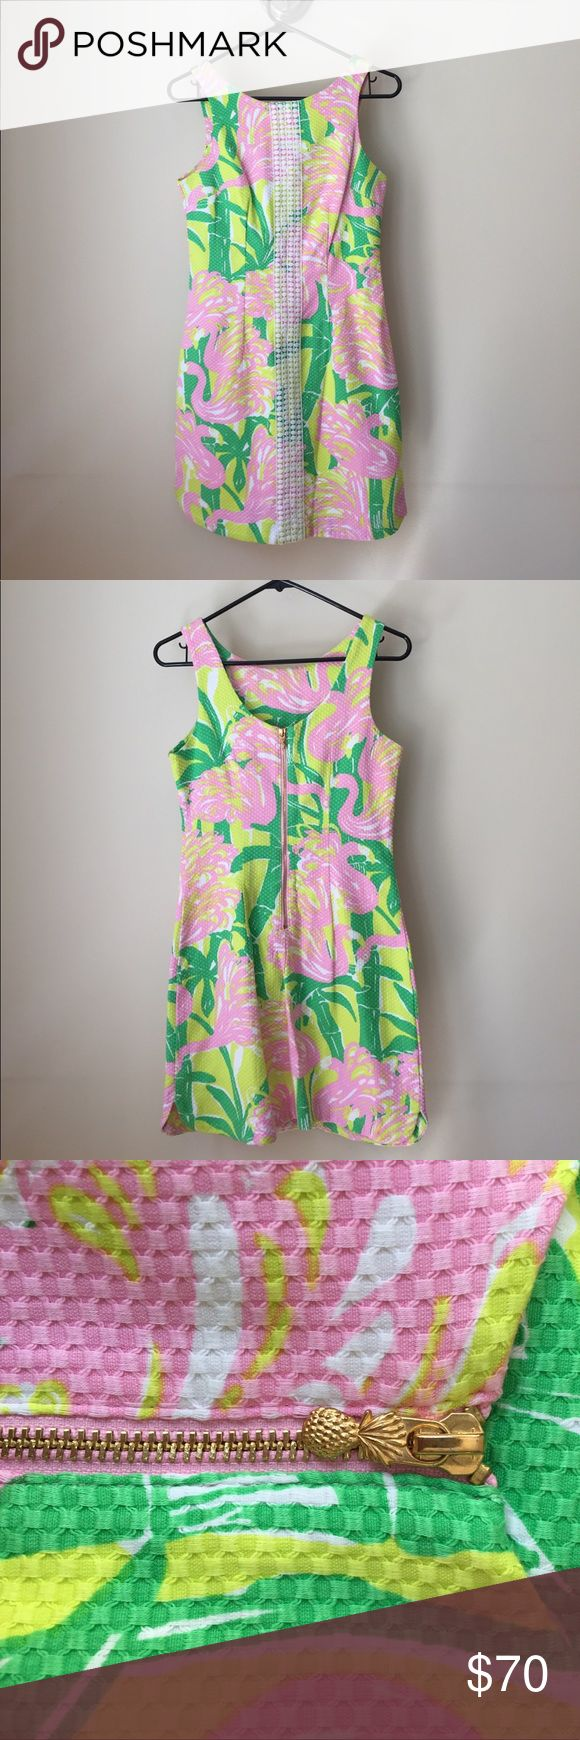 NWOT Lilly Pulitzer for Target Flamingo Dress NWOT dress from the limited Lilly for Target line! Size 2. All offers considered! Lilly Pulitzer for Target Dresses